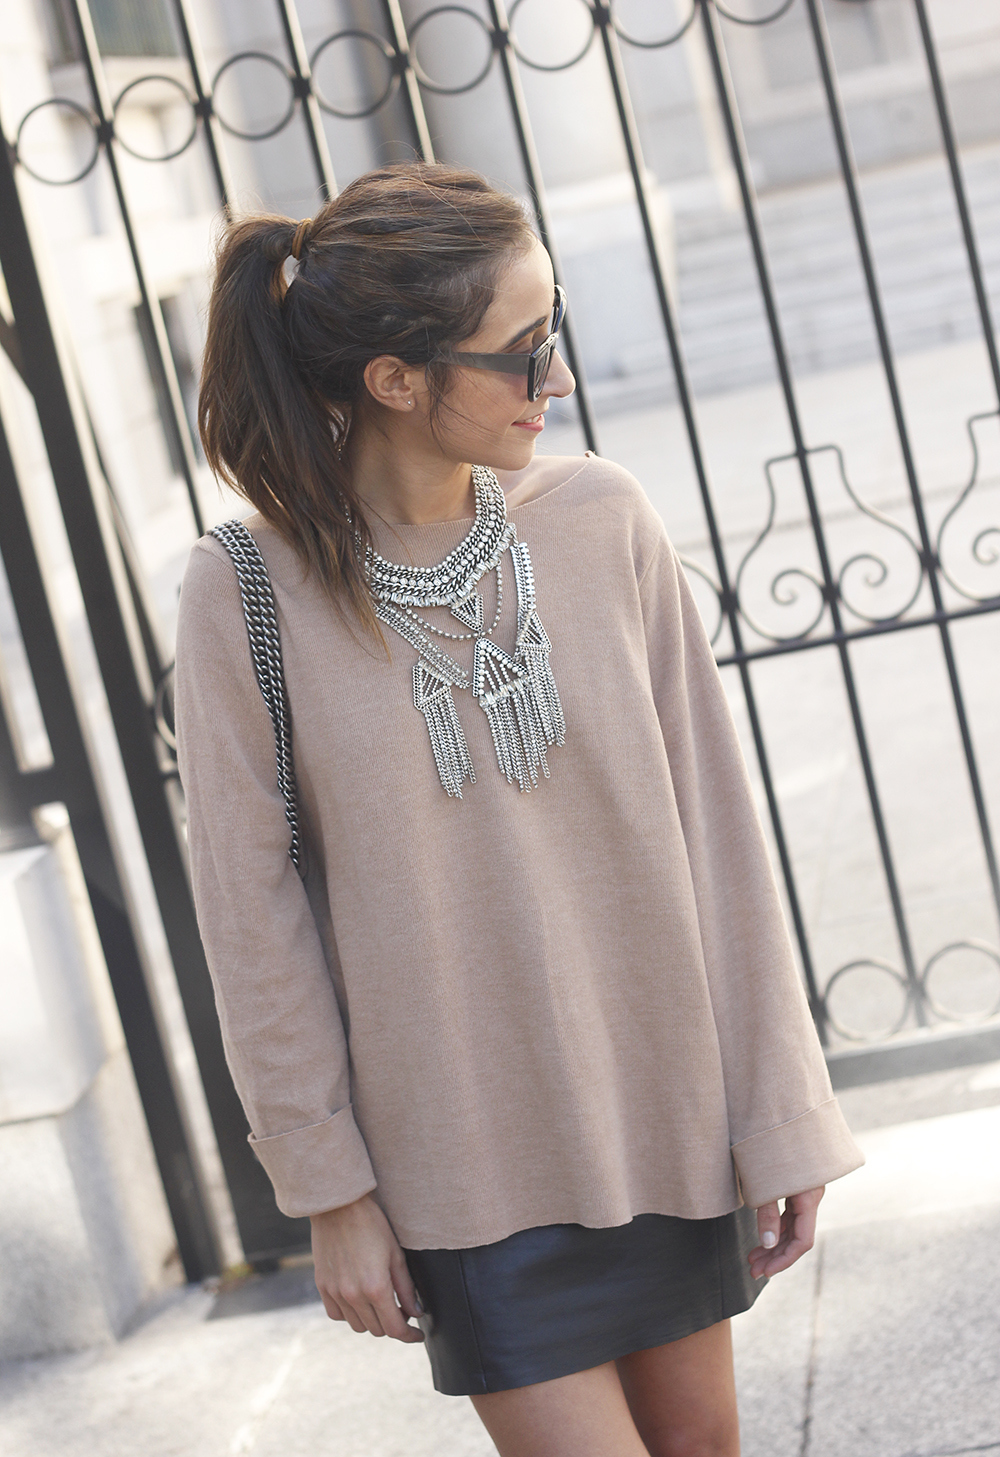 nude sweater leather skirt heels sunnies gucci bag fashion outfit style19